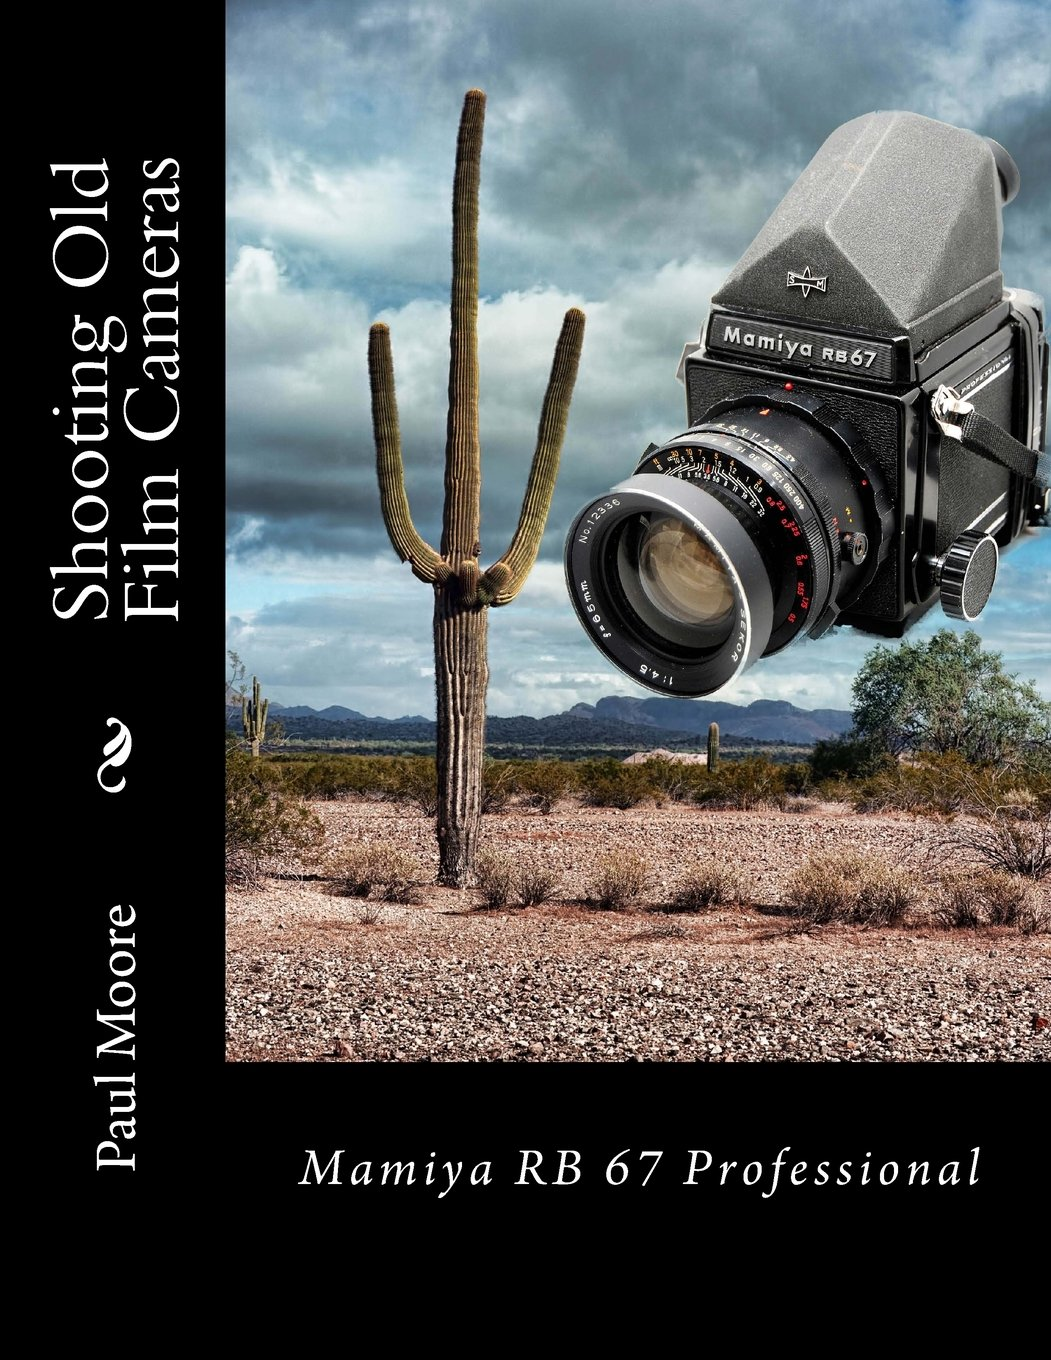 Download Shooting Old Film Cameras: Mamiya RB 67 Professional (Volume 17) pdf epub